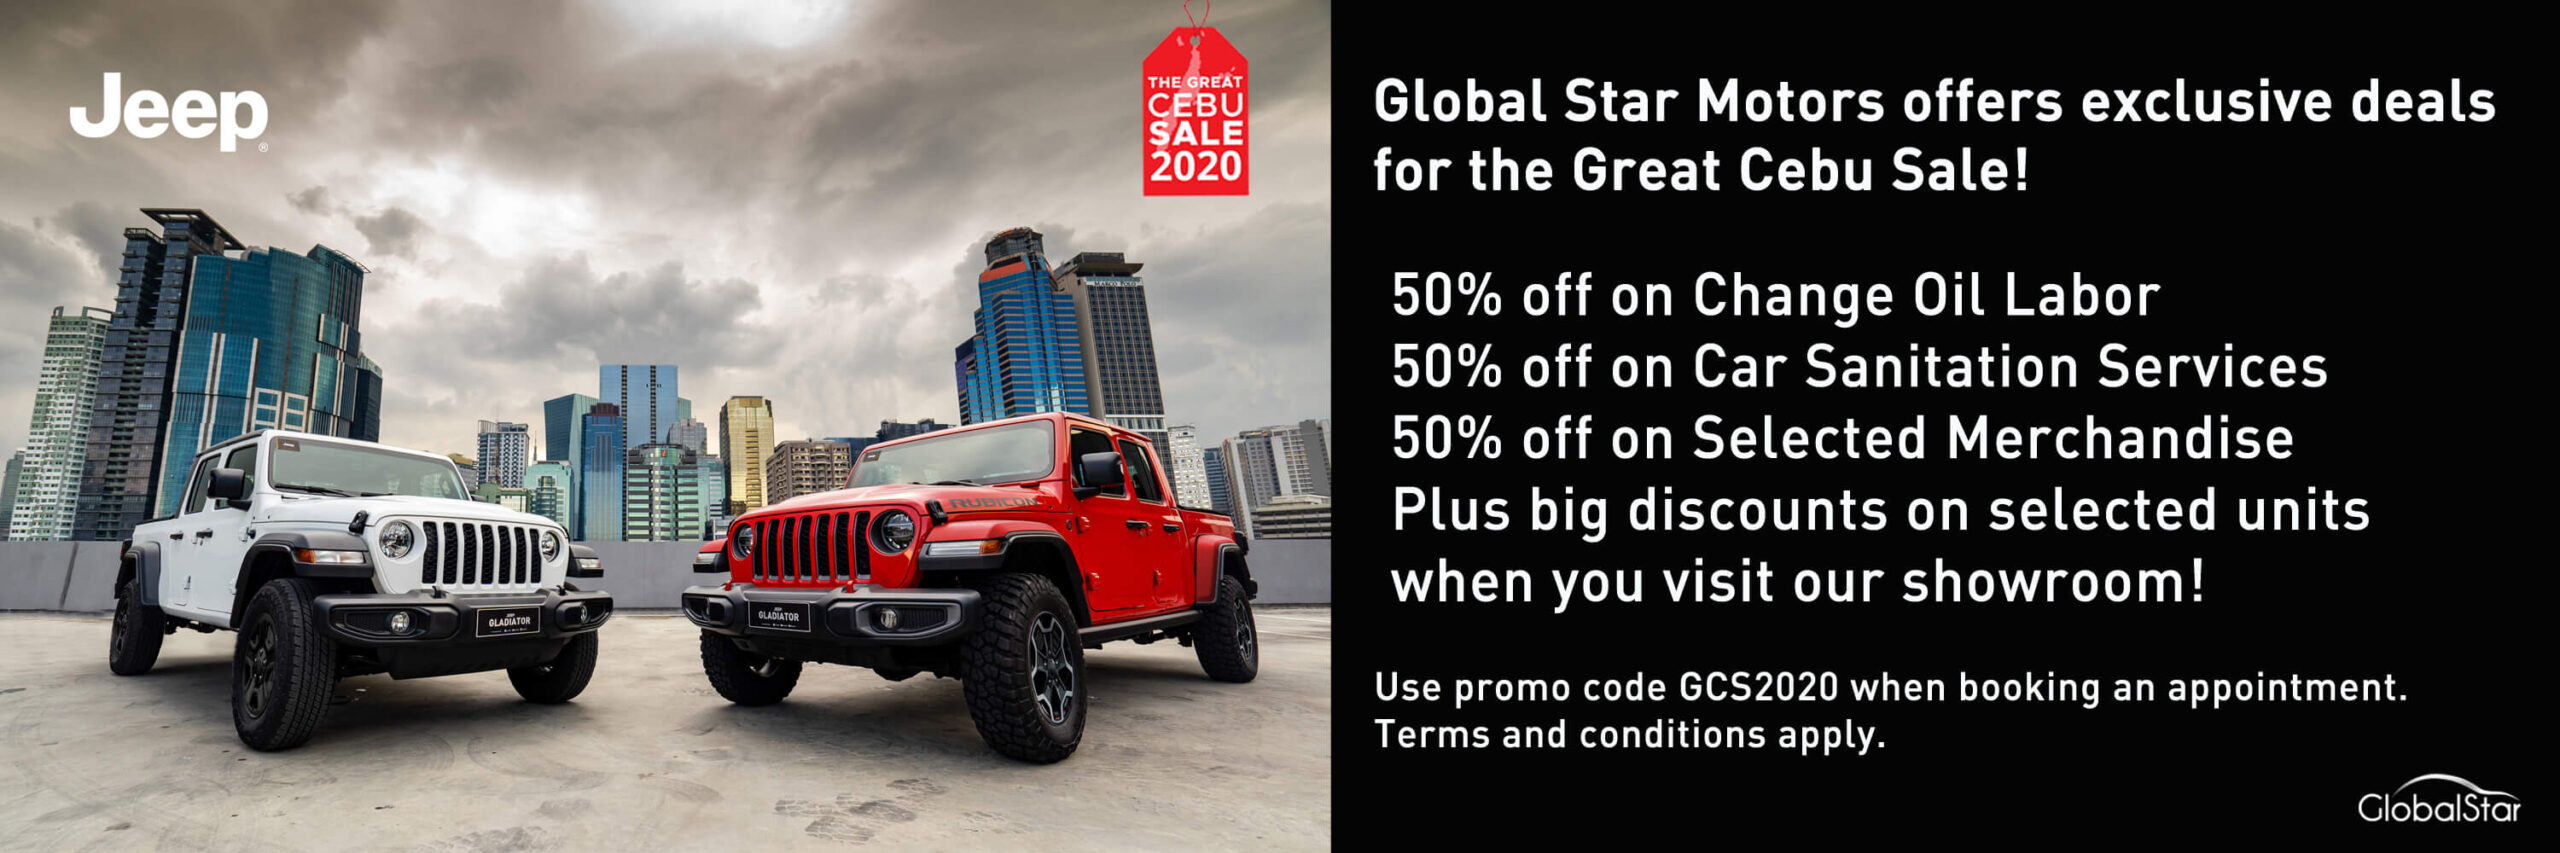 Global Star Motors offers 50% off on change oil labor, car sanitation, selected merchandise